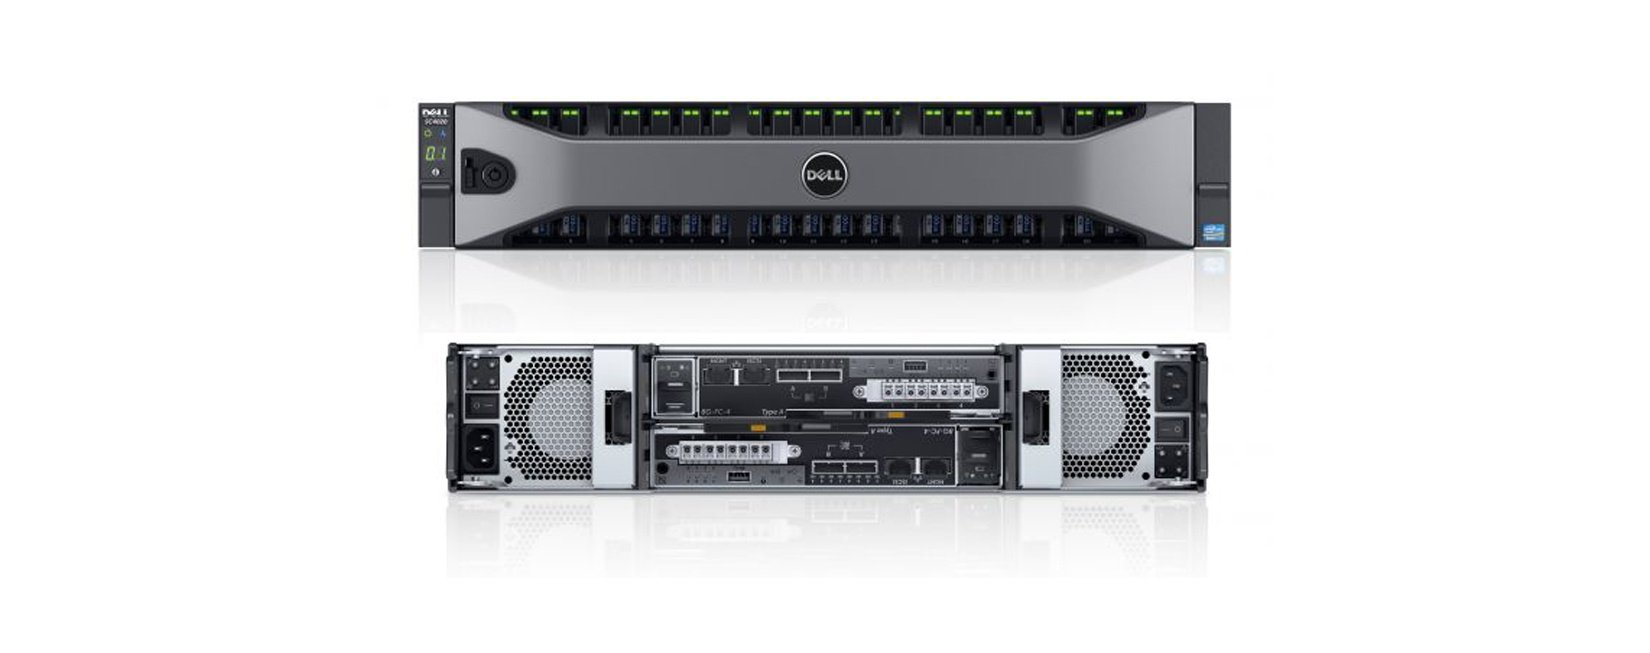 dell compellent sc4020 deployment guide